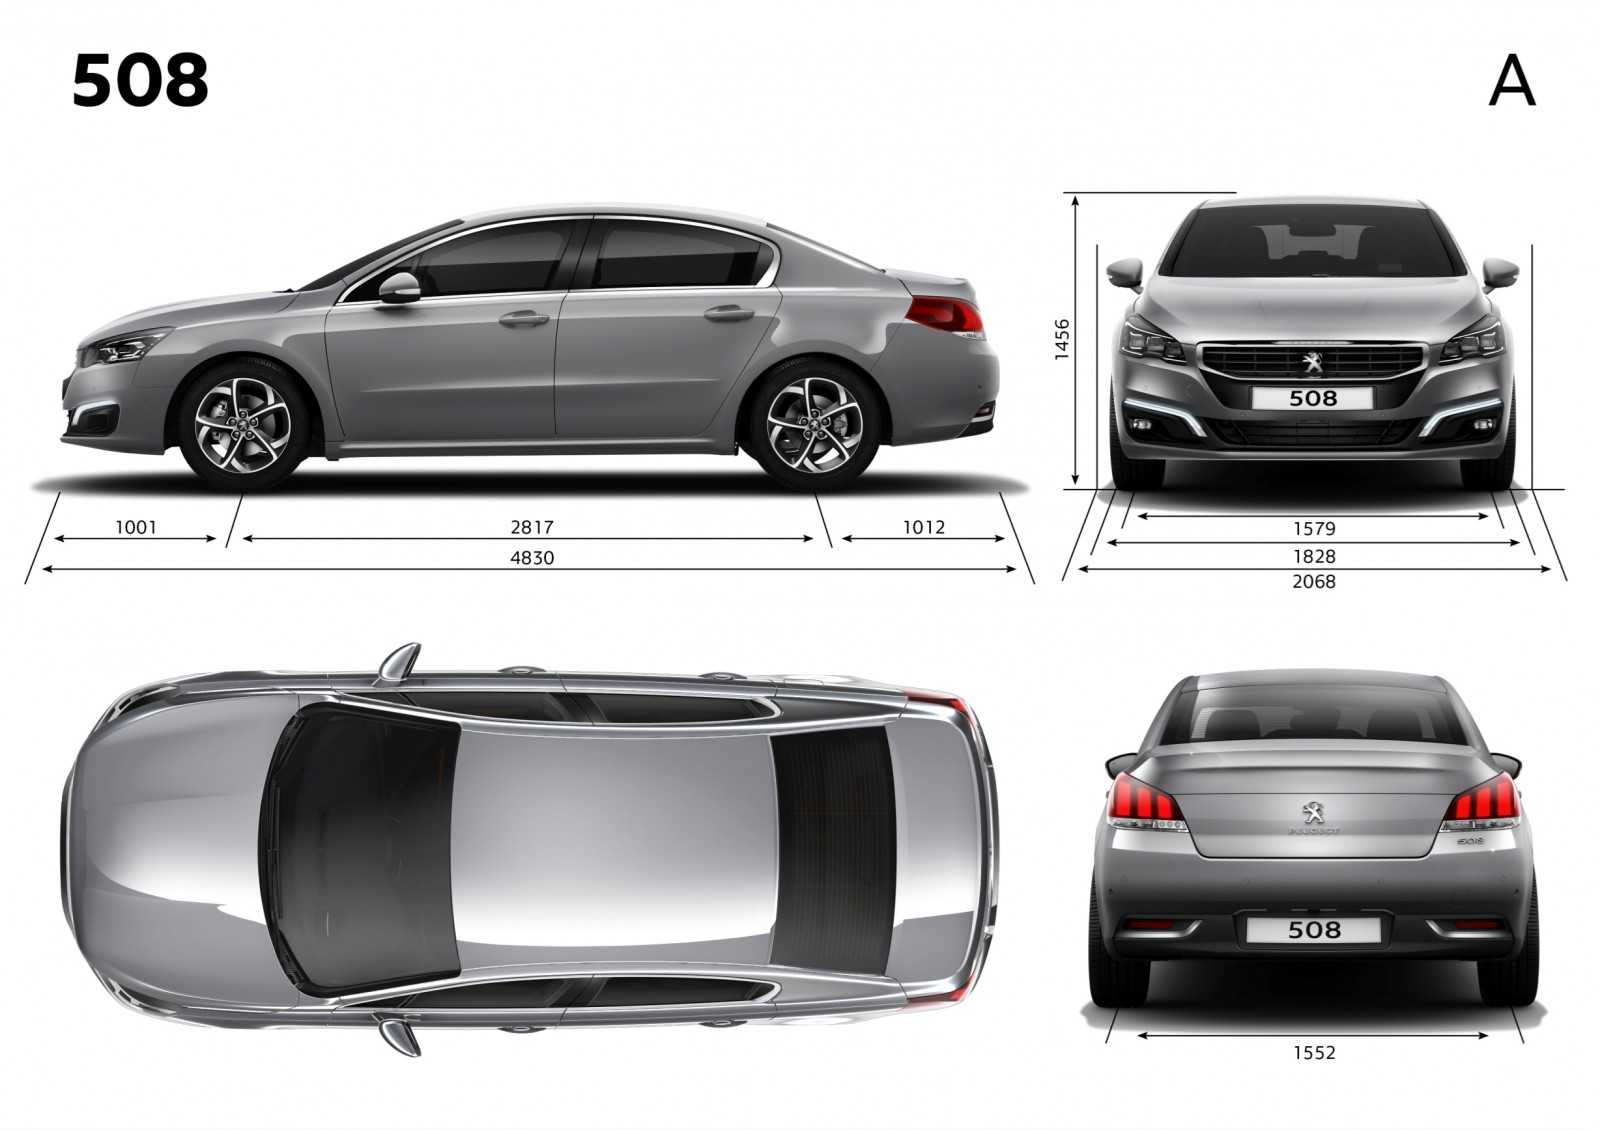 Update2 New Photos - 2015 Peugeot 508 Facelifted With New LED DRLs, Box-Design Beams and Tweaked Cabin Tech 12